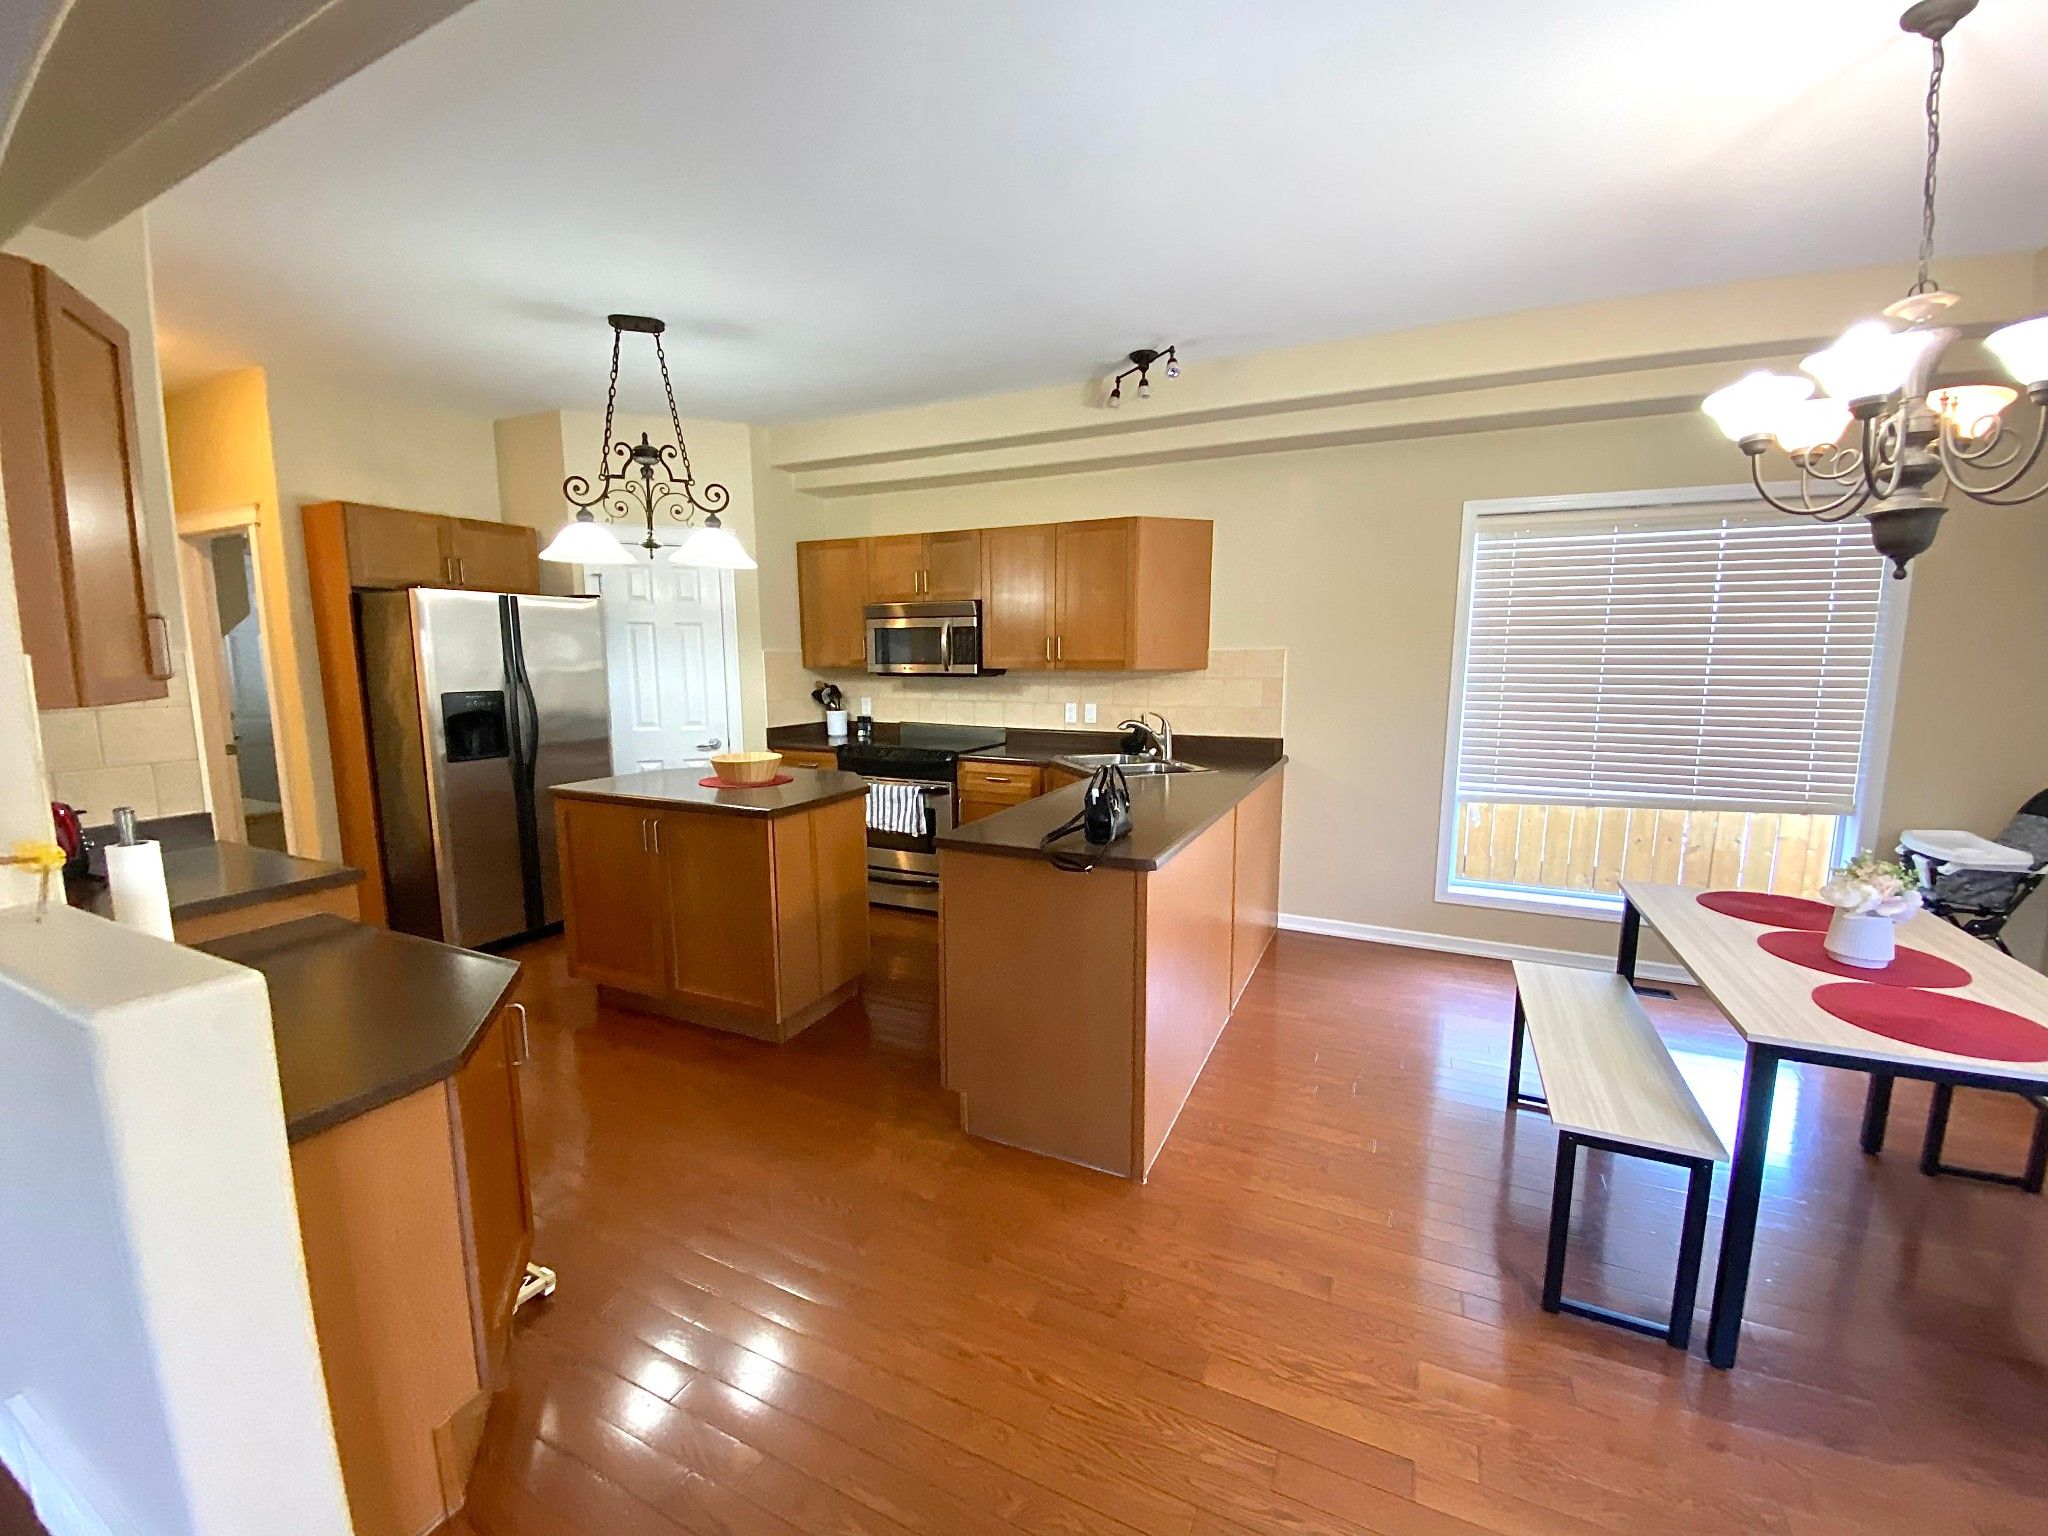 Main Photo: 648 Gessinger Rd in Edmonton: House for rent